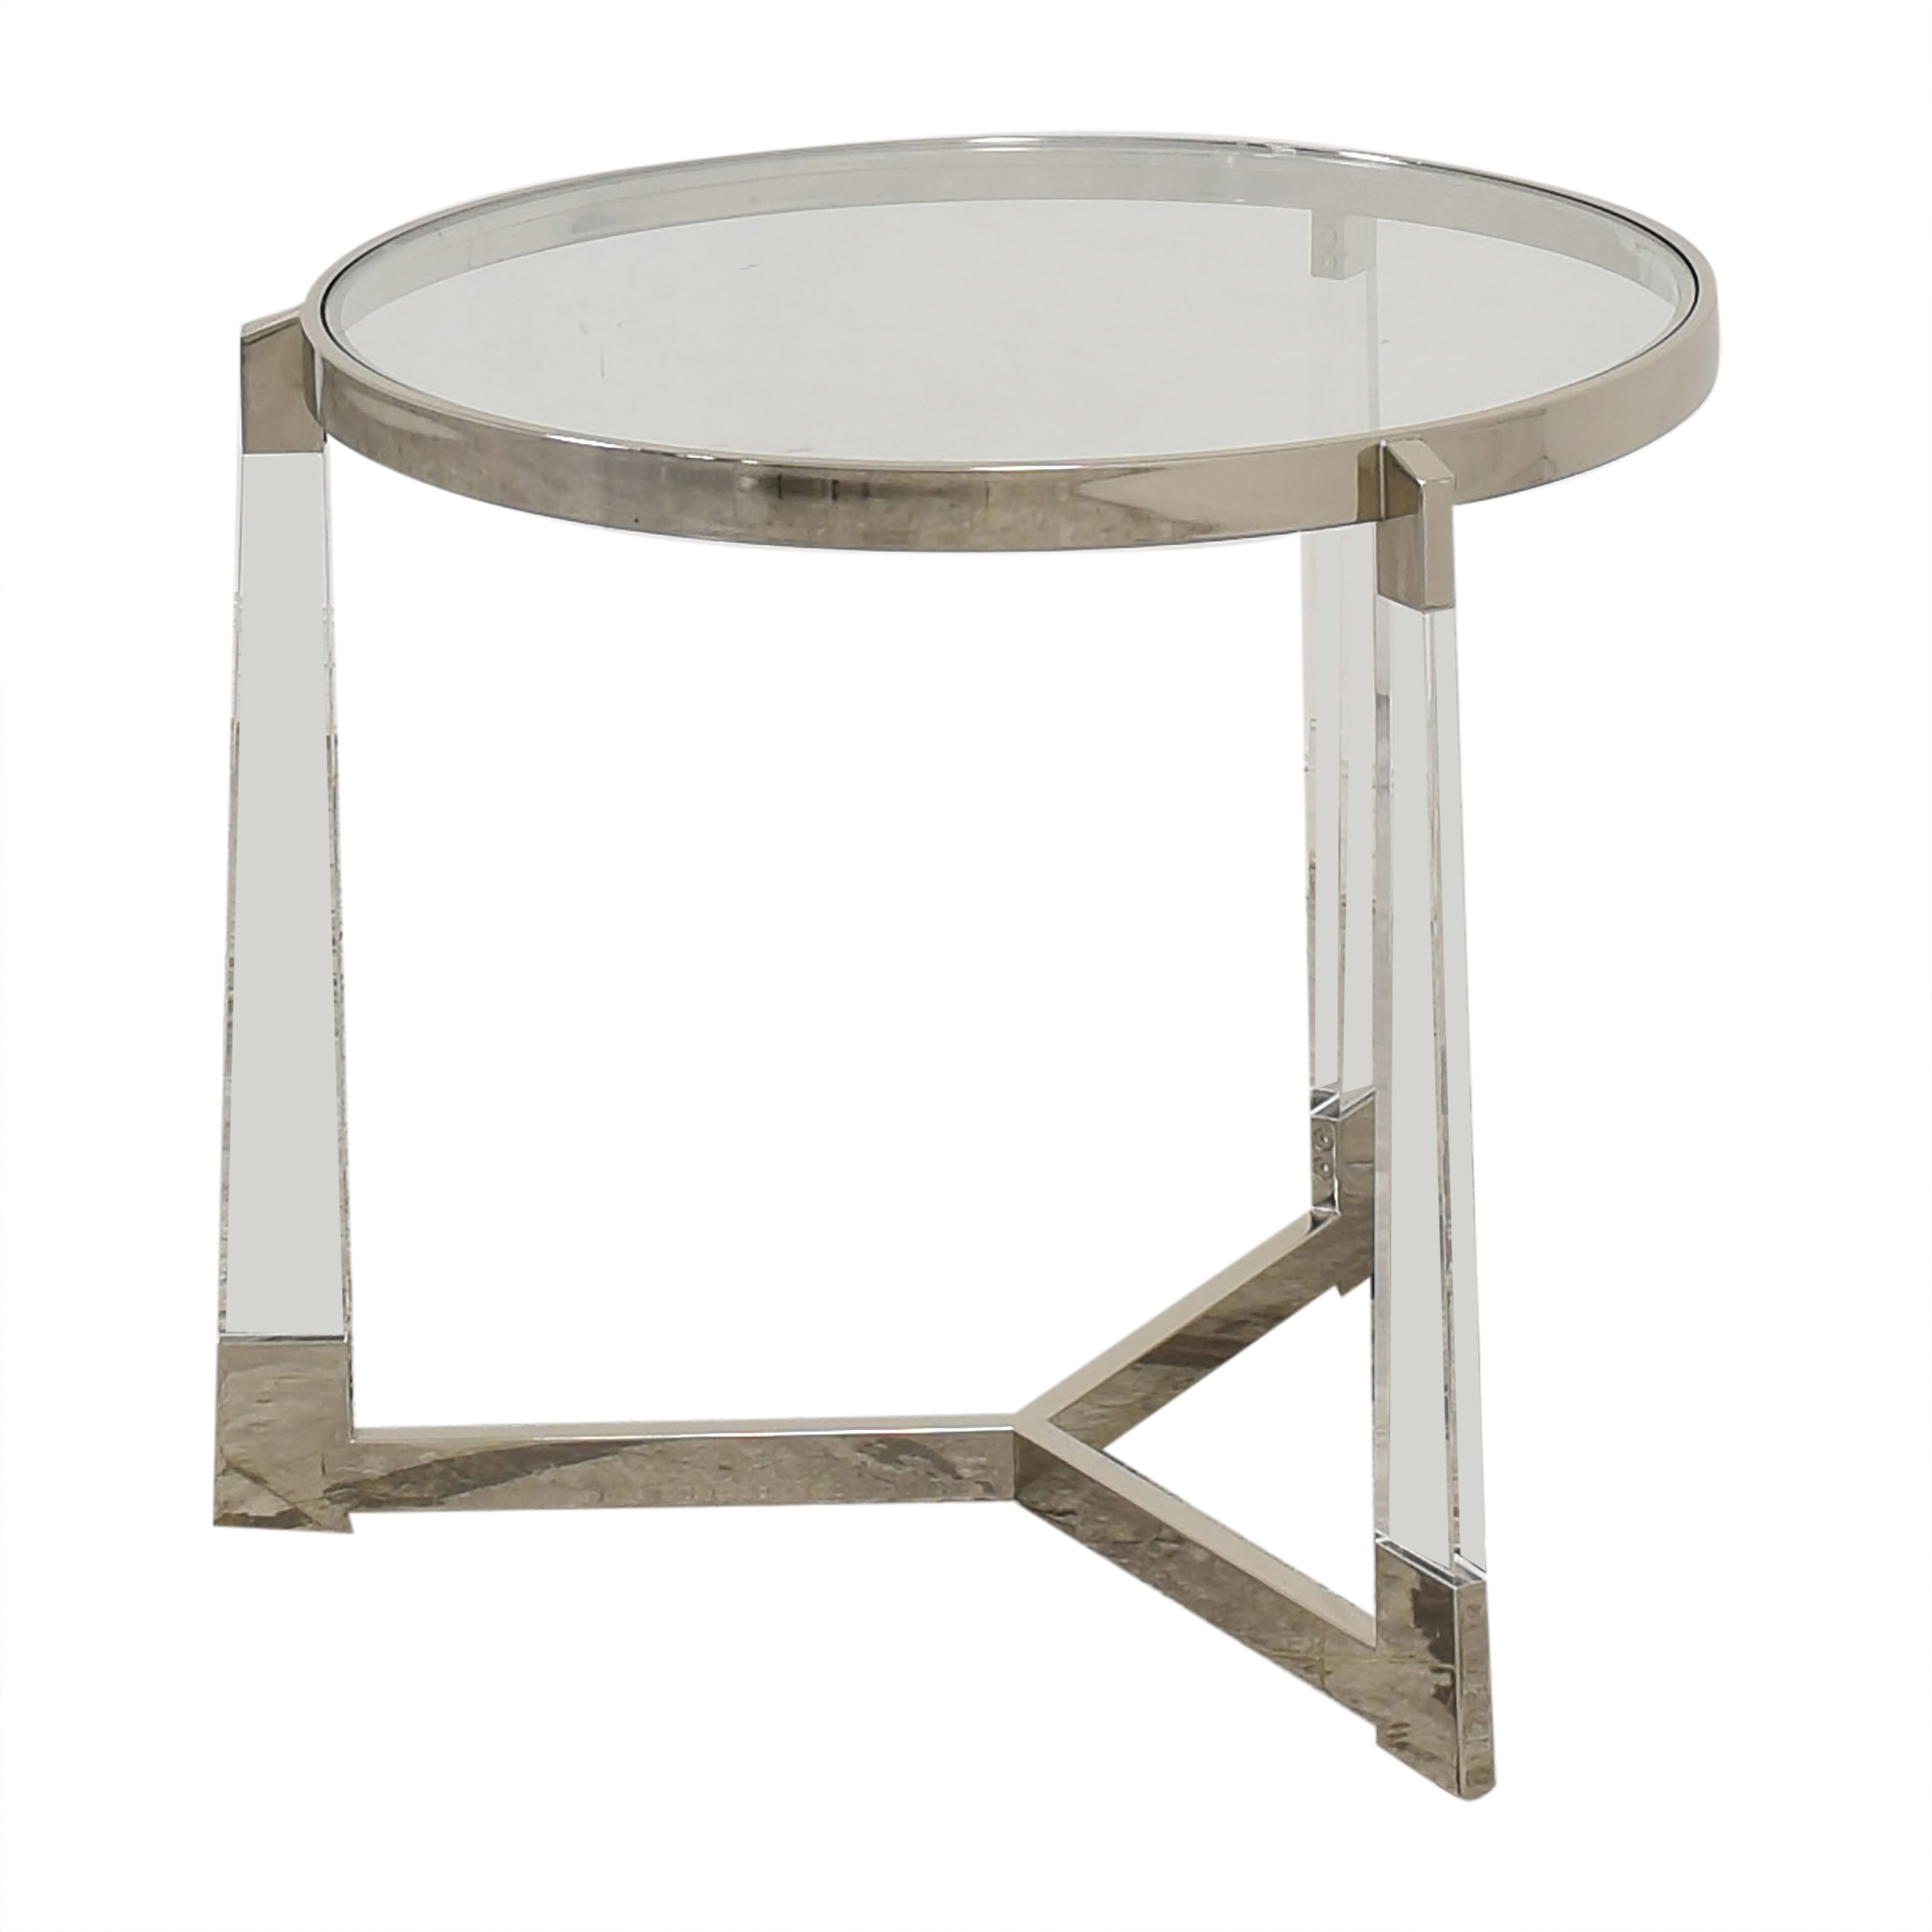 Round Side Table with Transparent Surface / End Tables